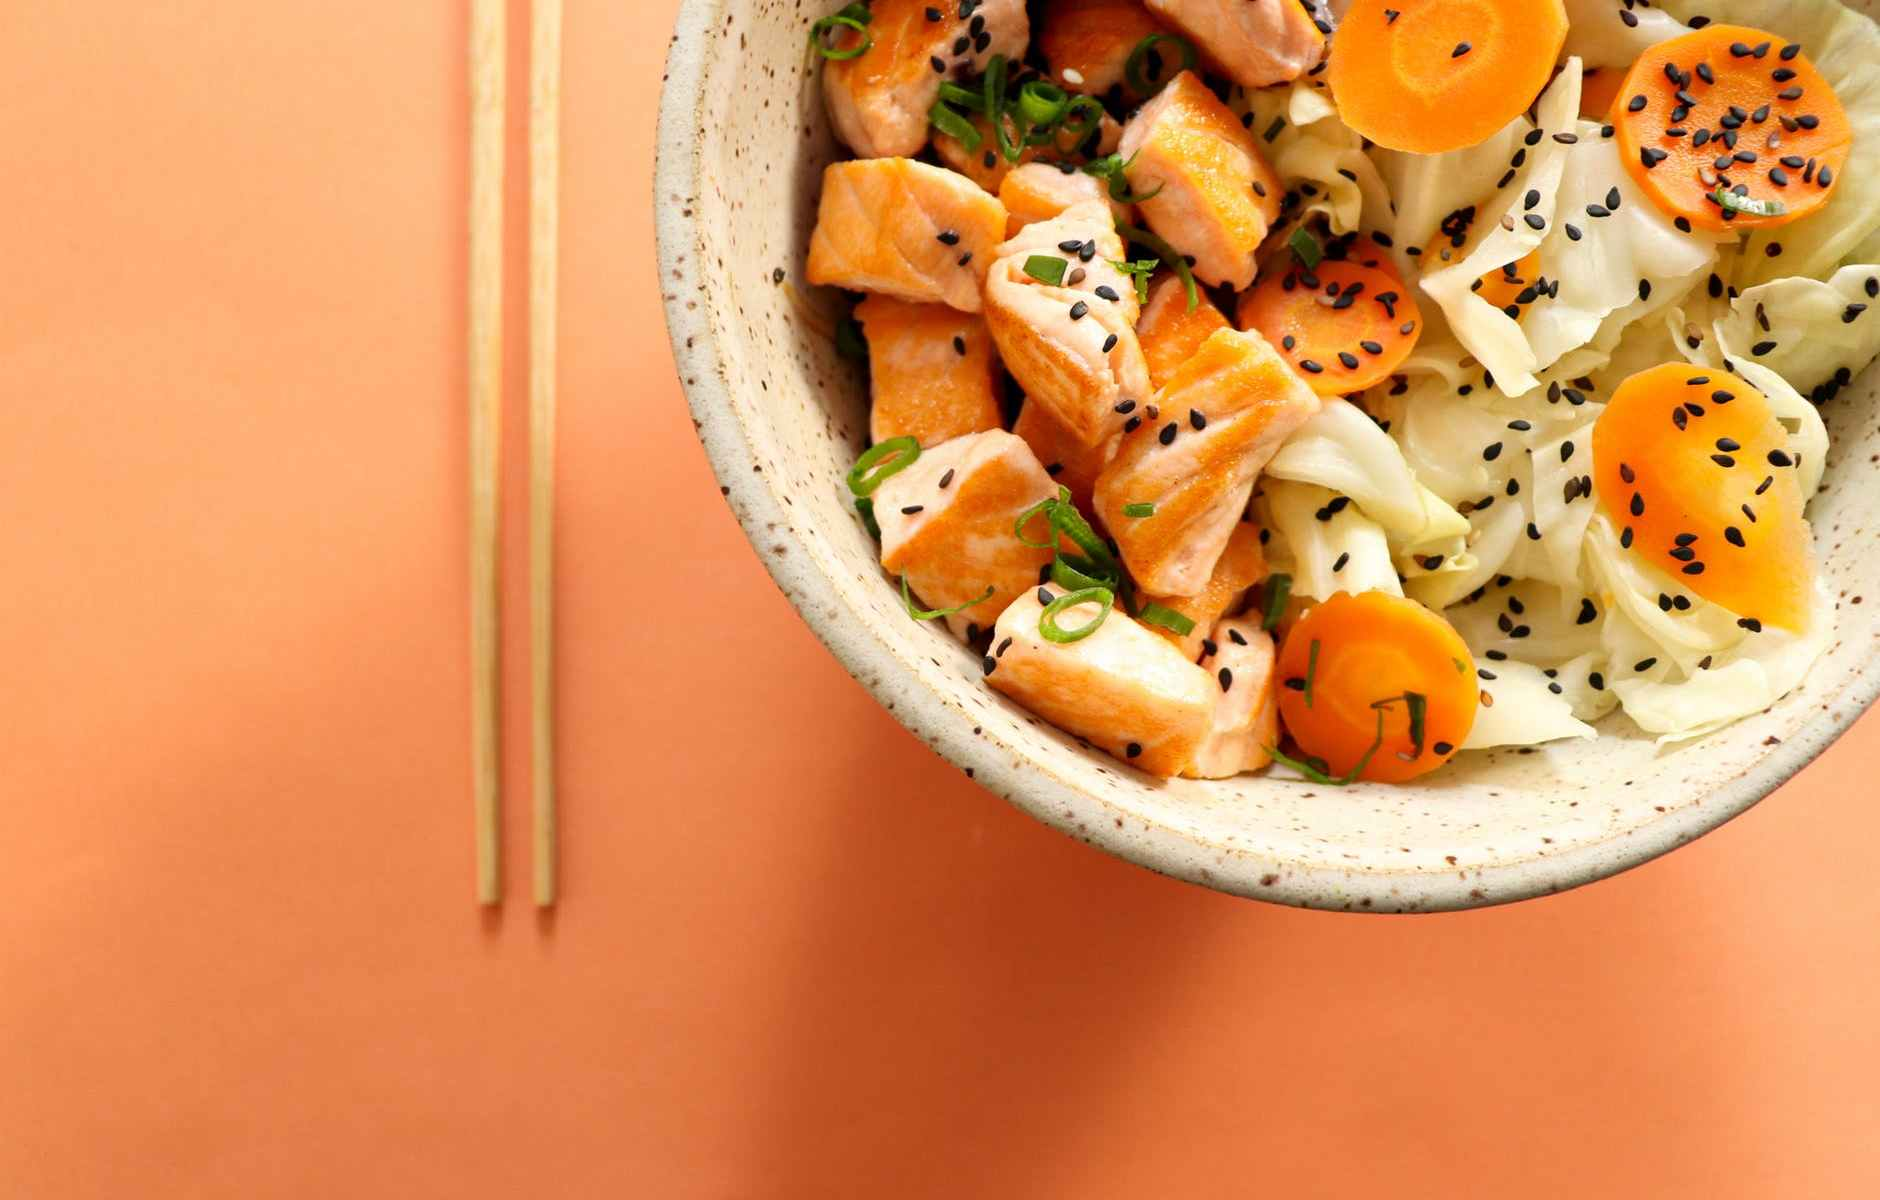 delicious poke bowl with vegetables and raw fish